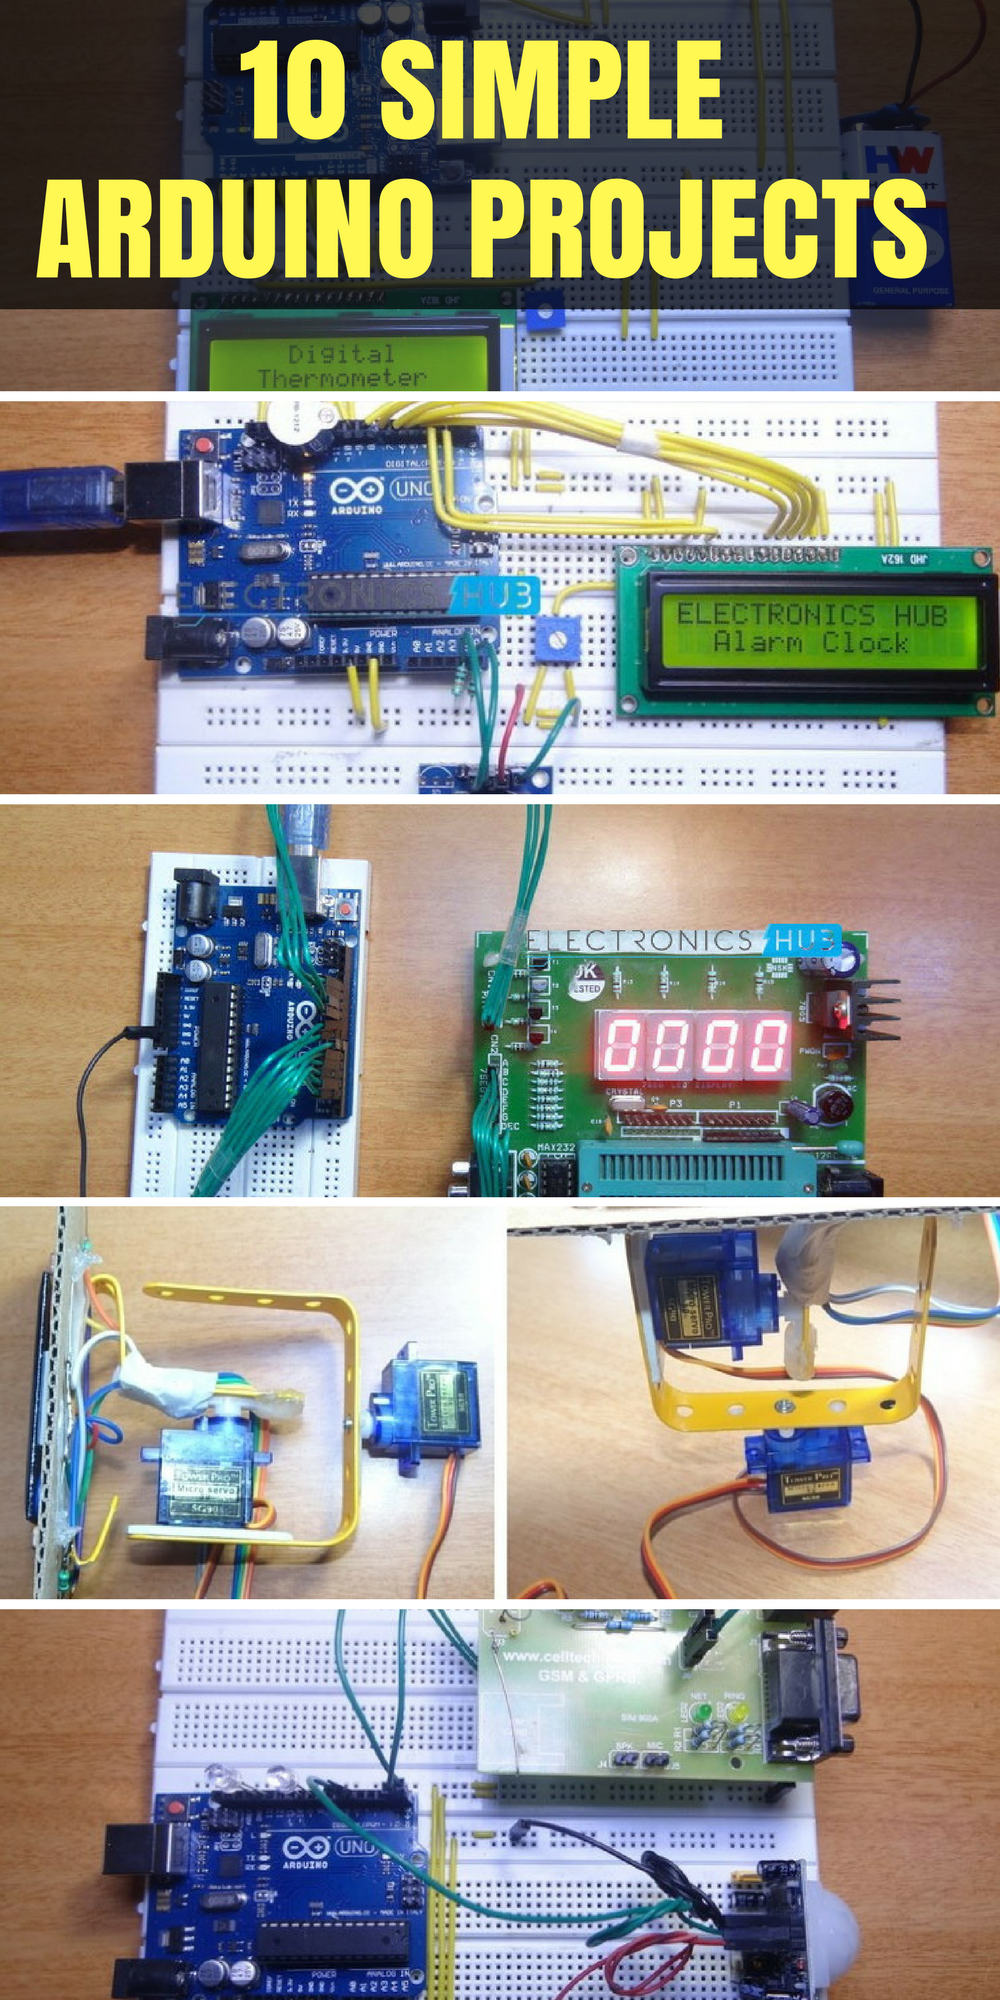 10 Simple Arduino Projects For Beginners With Code Digital Thermometer Circuit Projetos Eletrnica